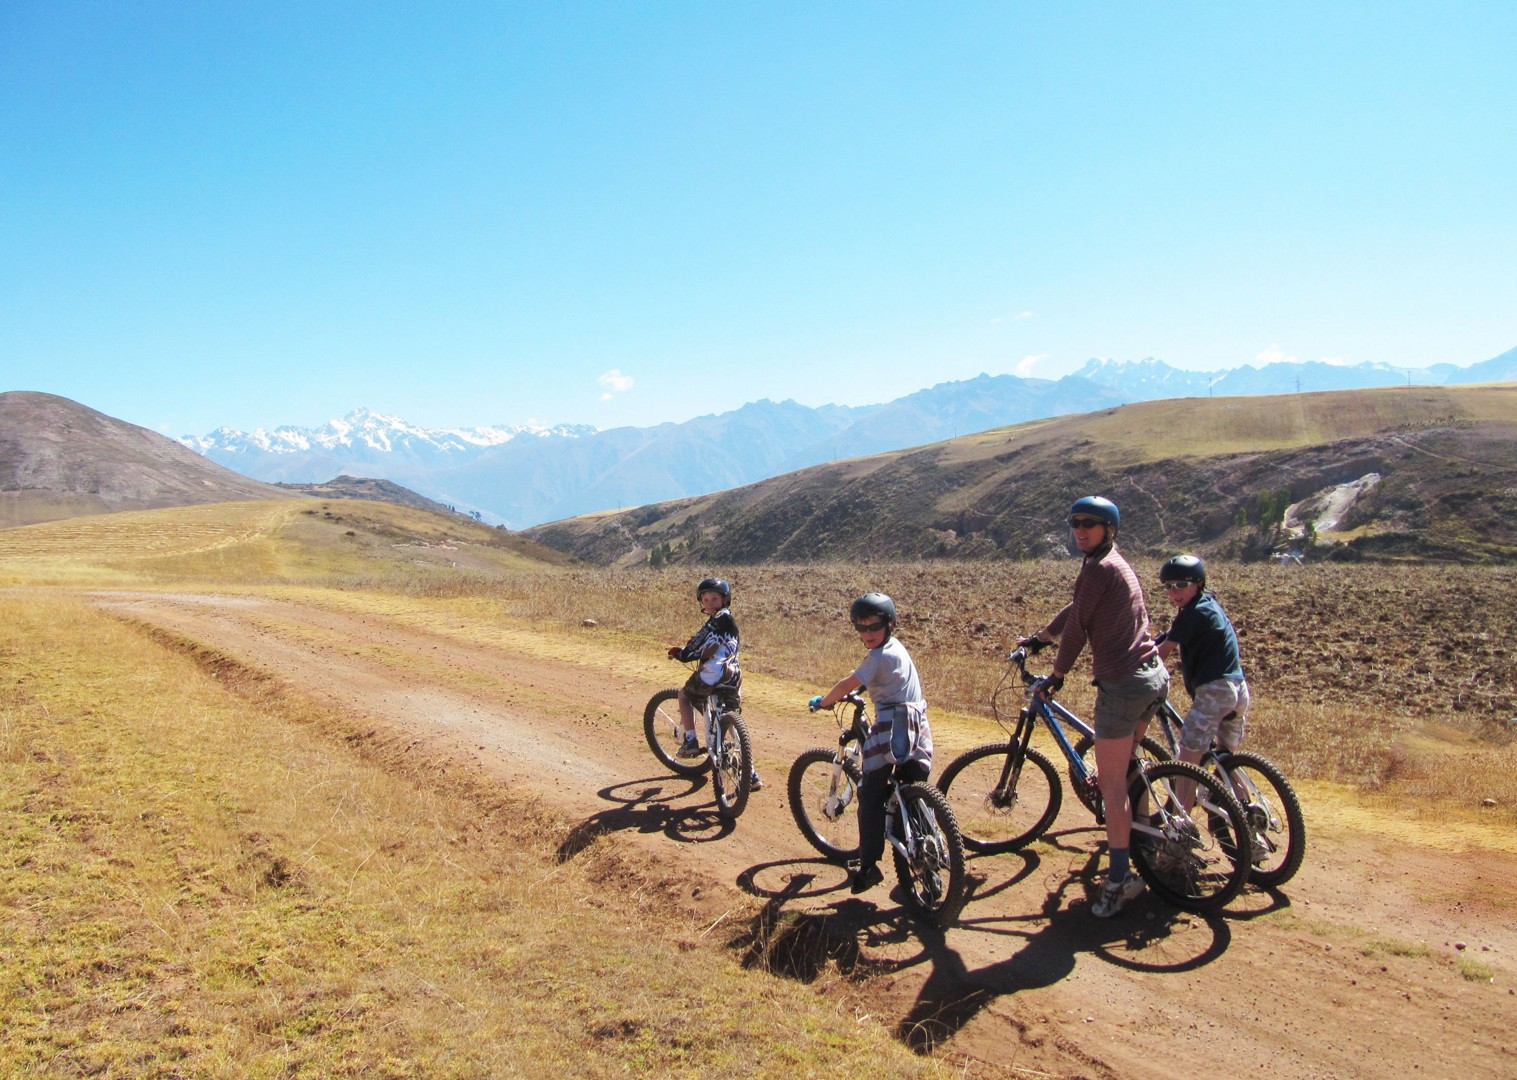 guided-family-cycling-holiday-andean-adventurer-peru-maras-salt-pans.JPG - Peru - Andean Adventure - Guided Family Cycling Holiday - Family Cycling